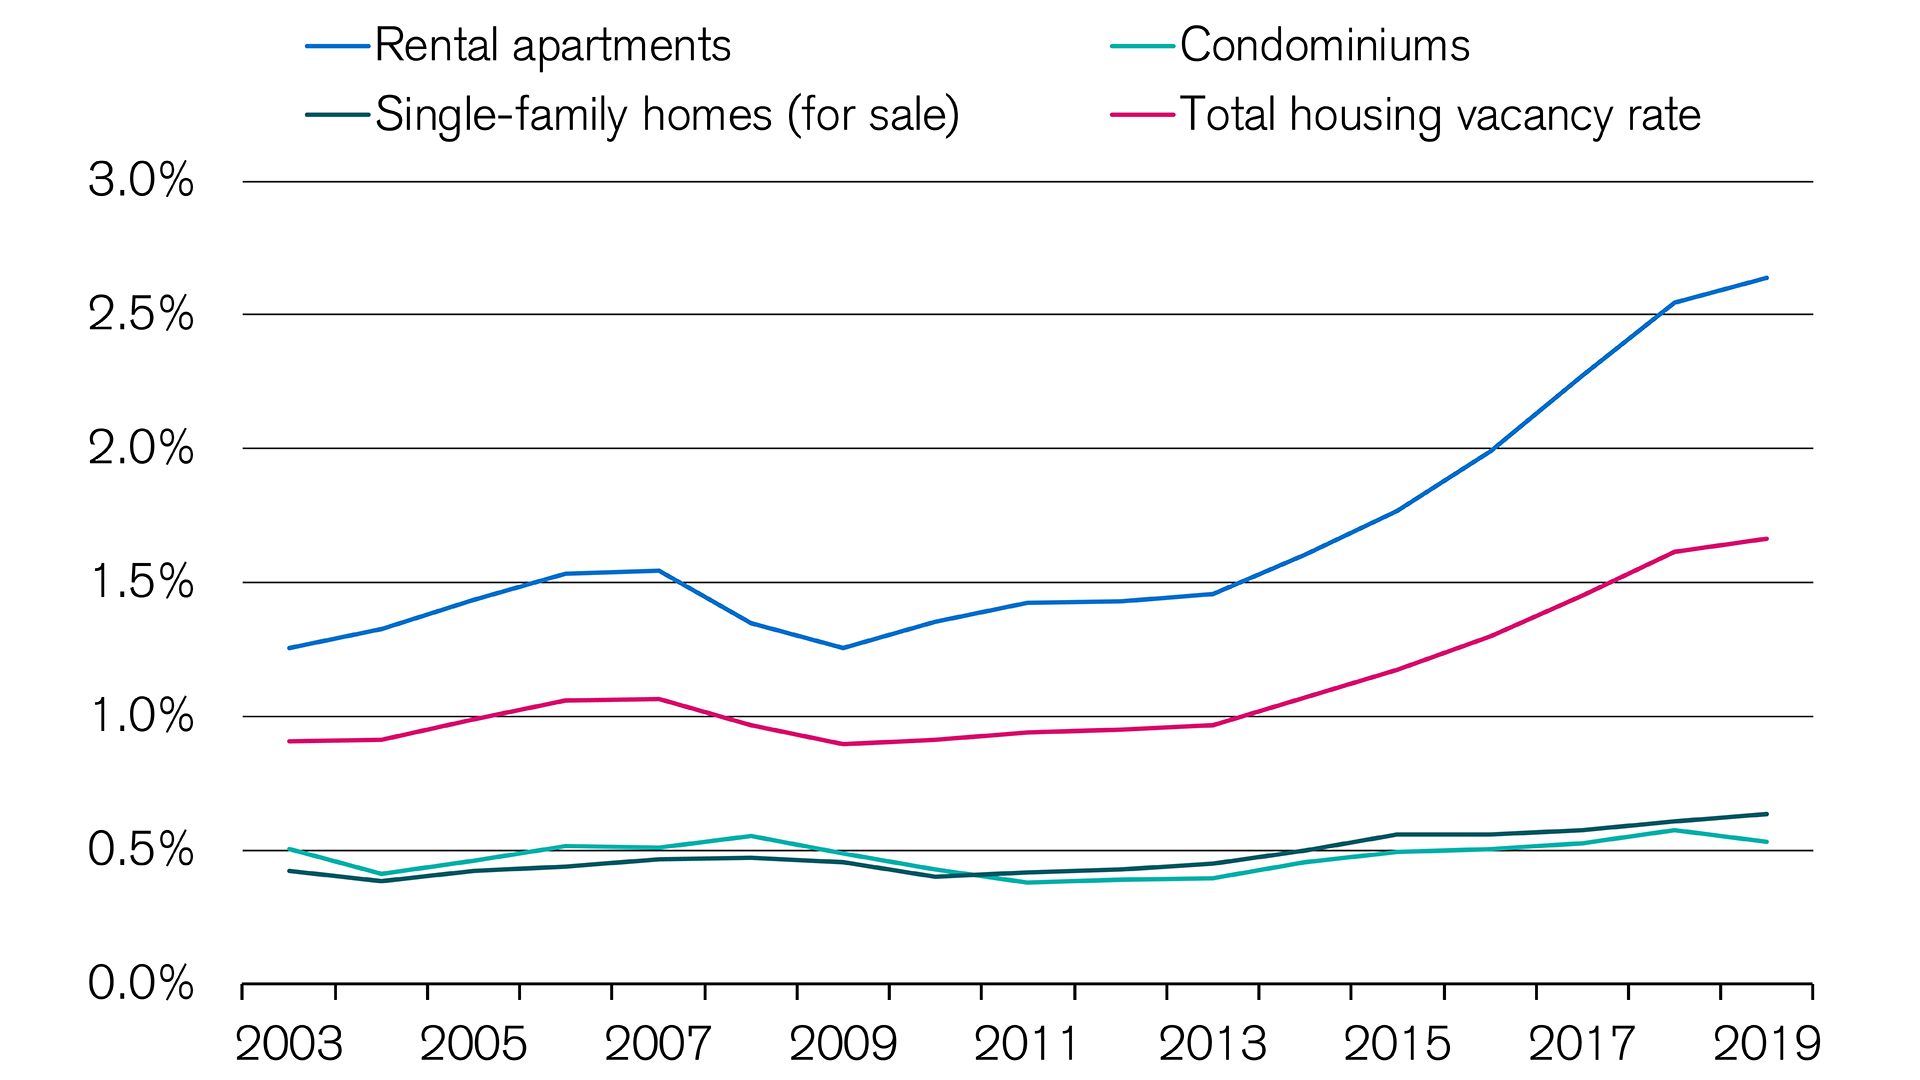 condominium-vacancy-rate-is-falling